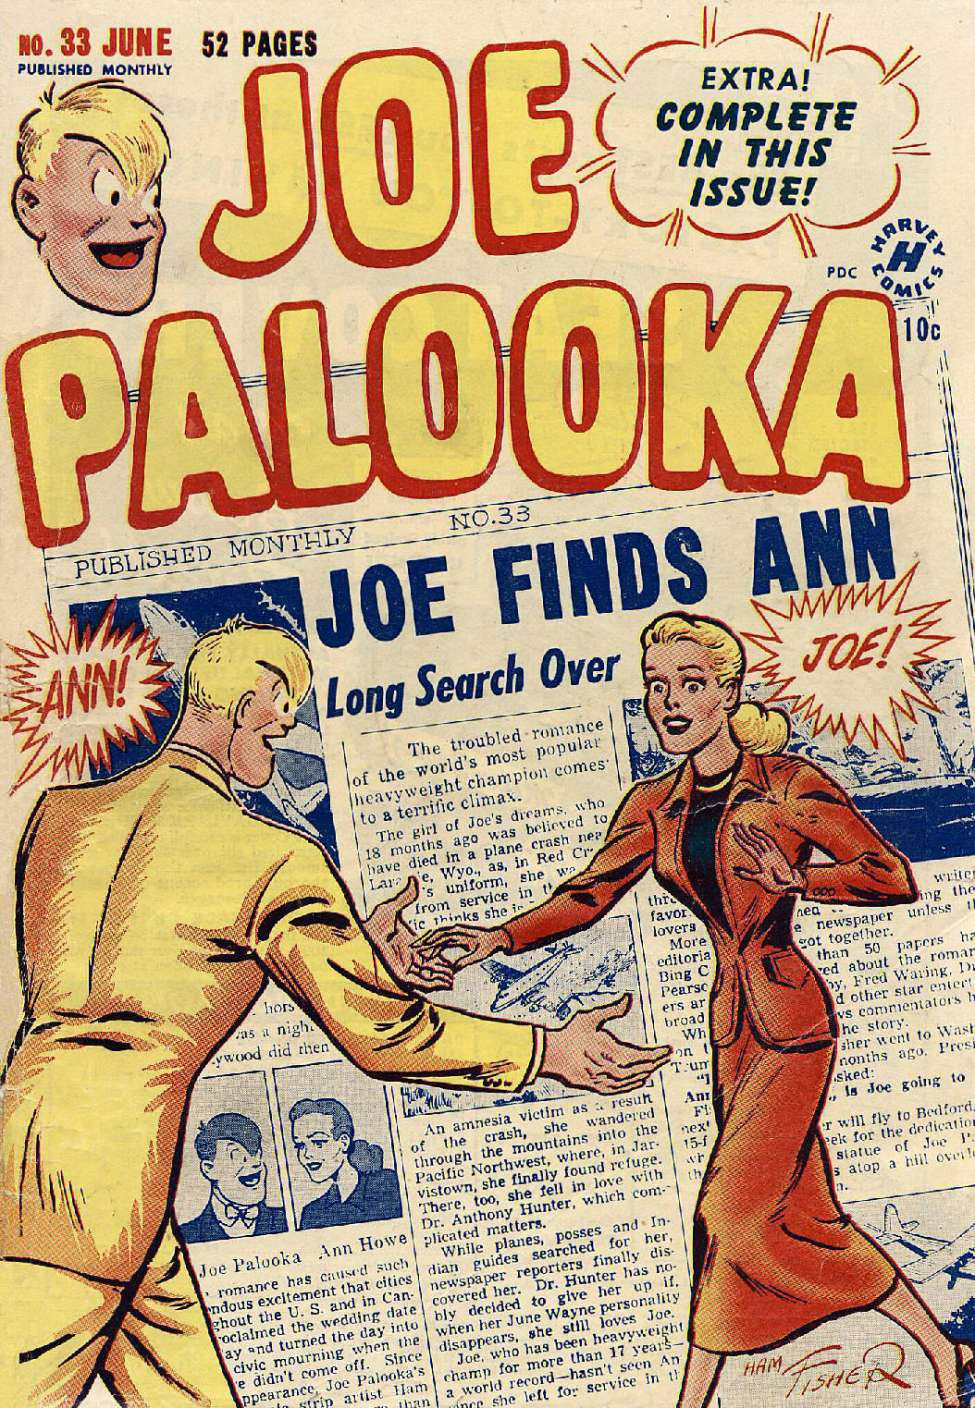 Joe Palooka #33, Harvey